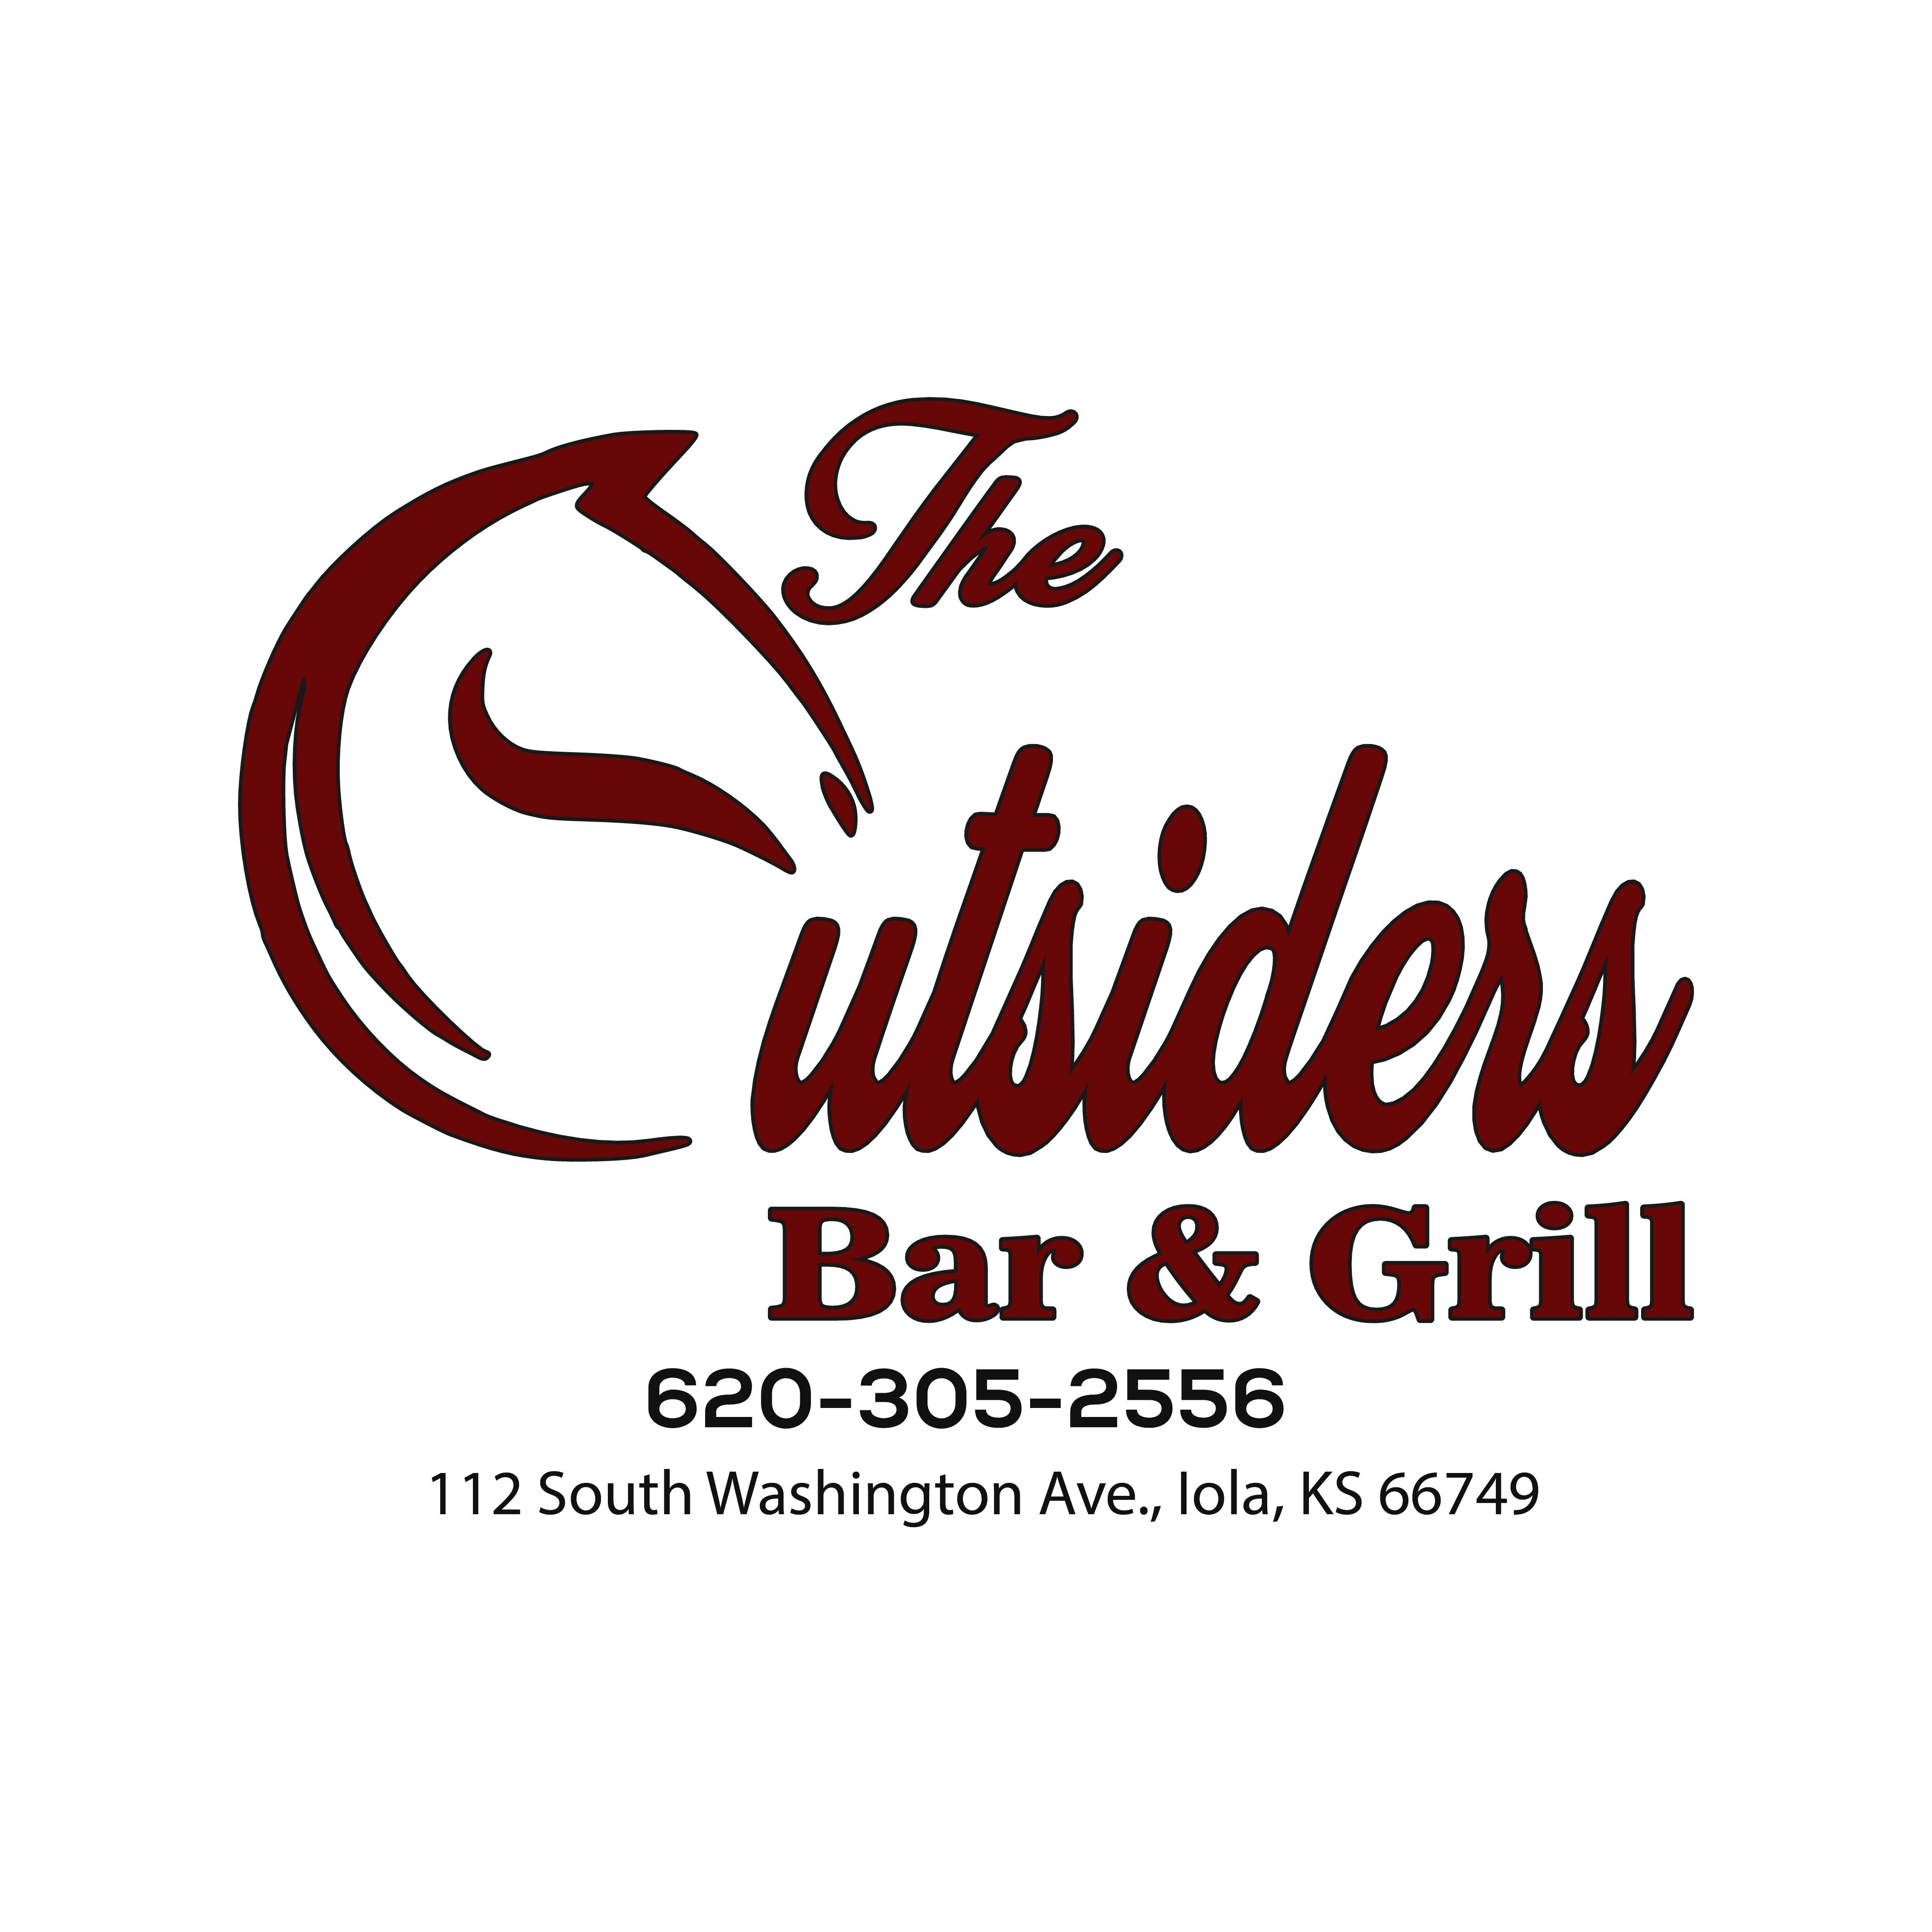 The Outsiders Bar & Grill